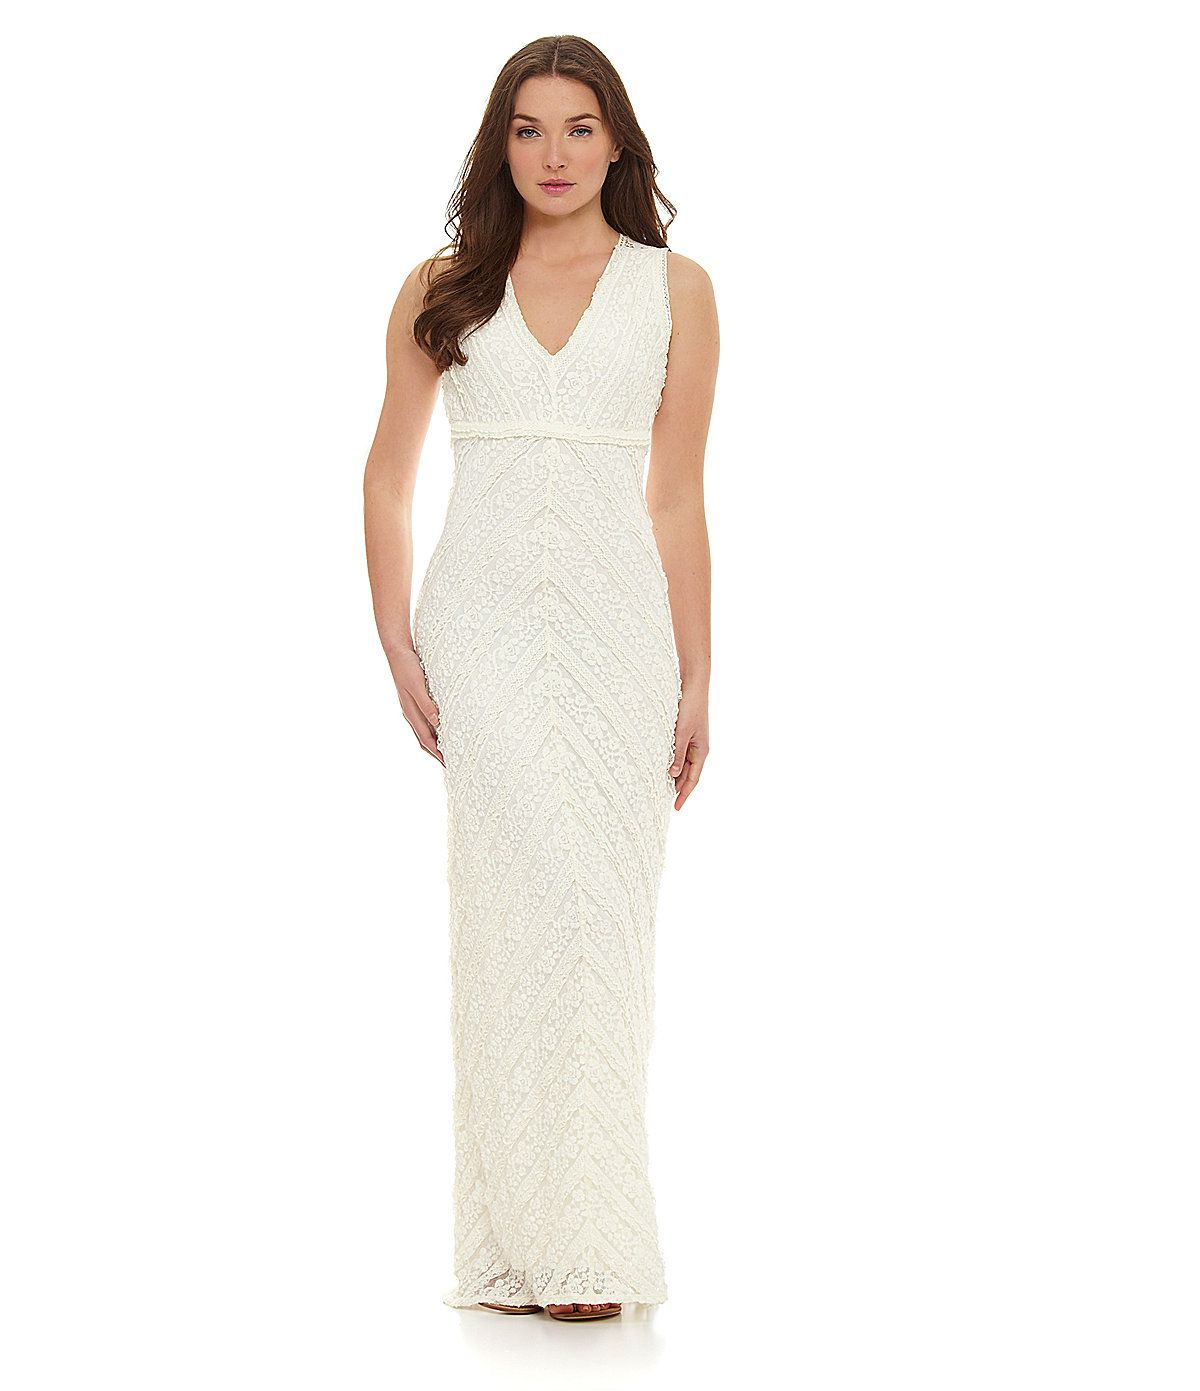 Chelsea violet tiered lace maxi dress dillards my style chelsea violet tiered lace maxi dress dillards ombrellifo Gallery